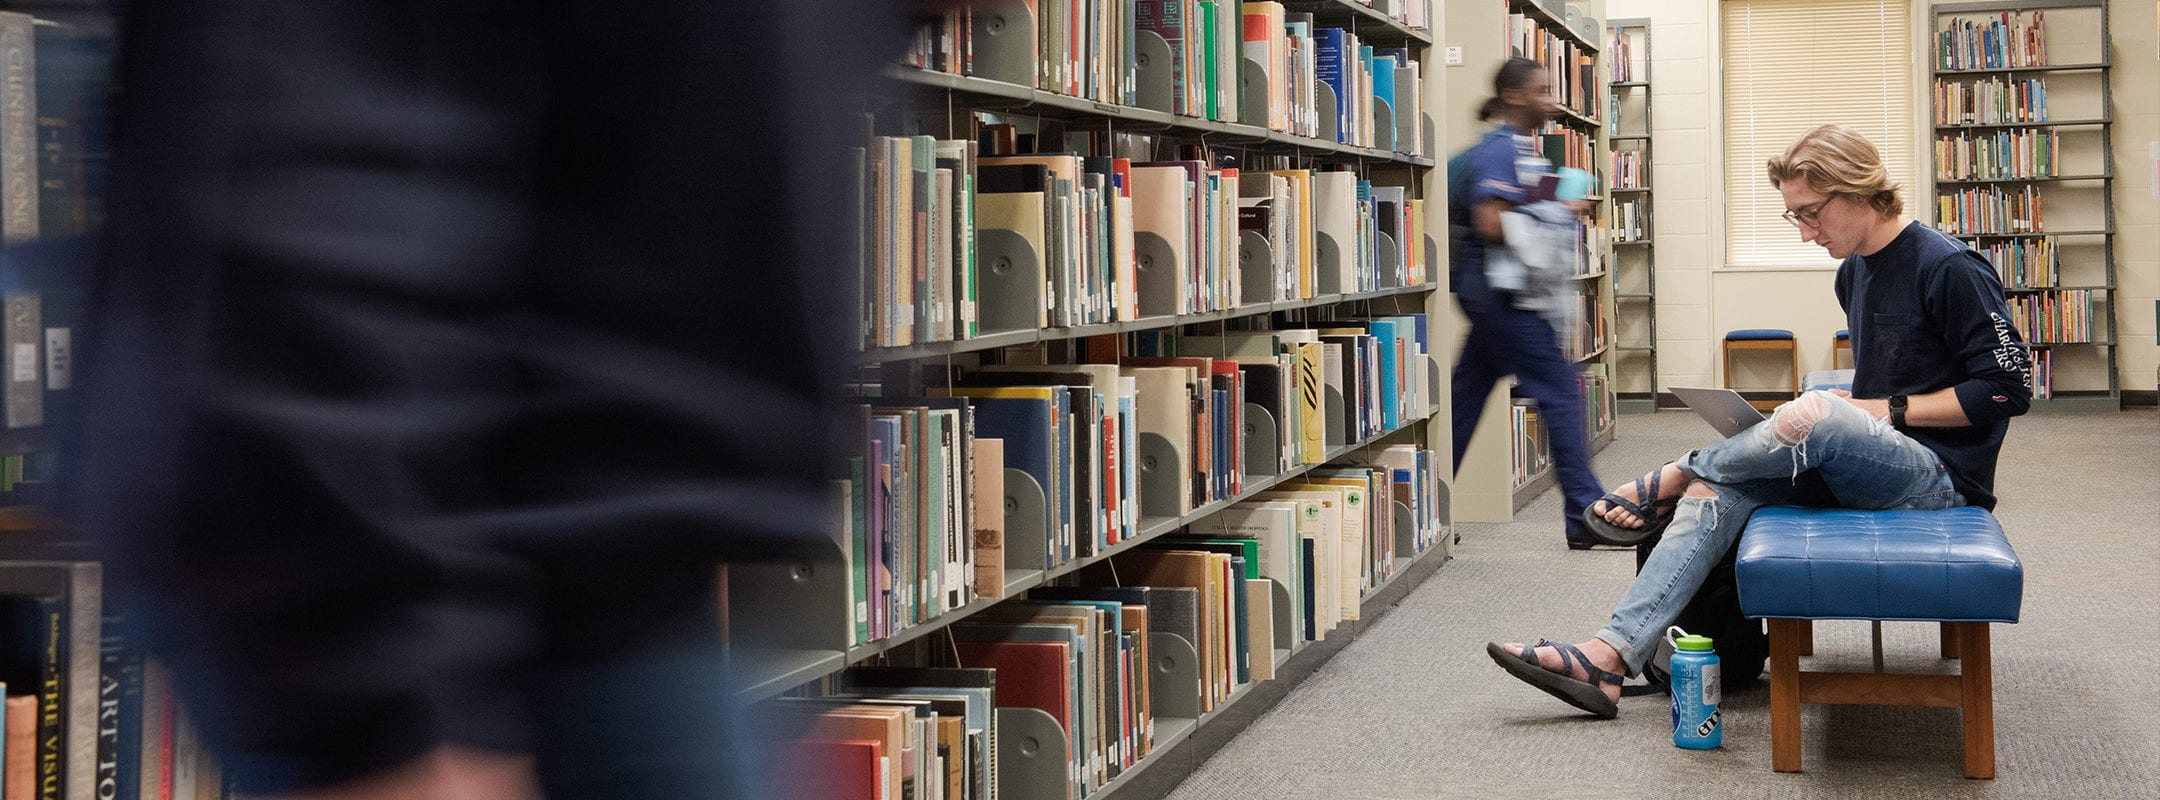 A student studying on a bench in the library while other students walk by.